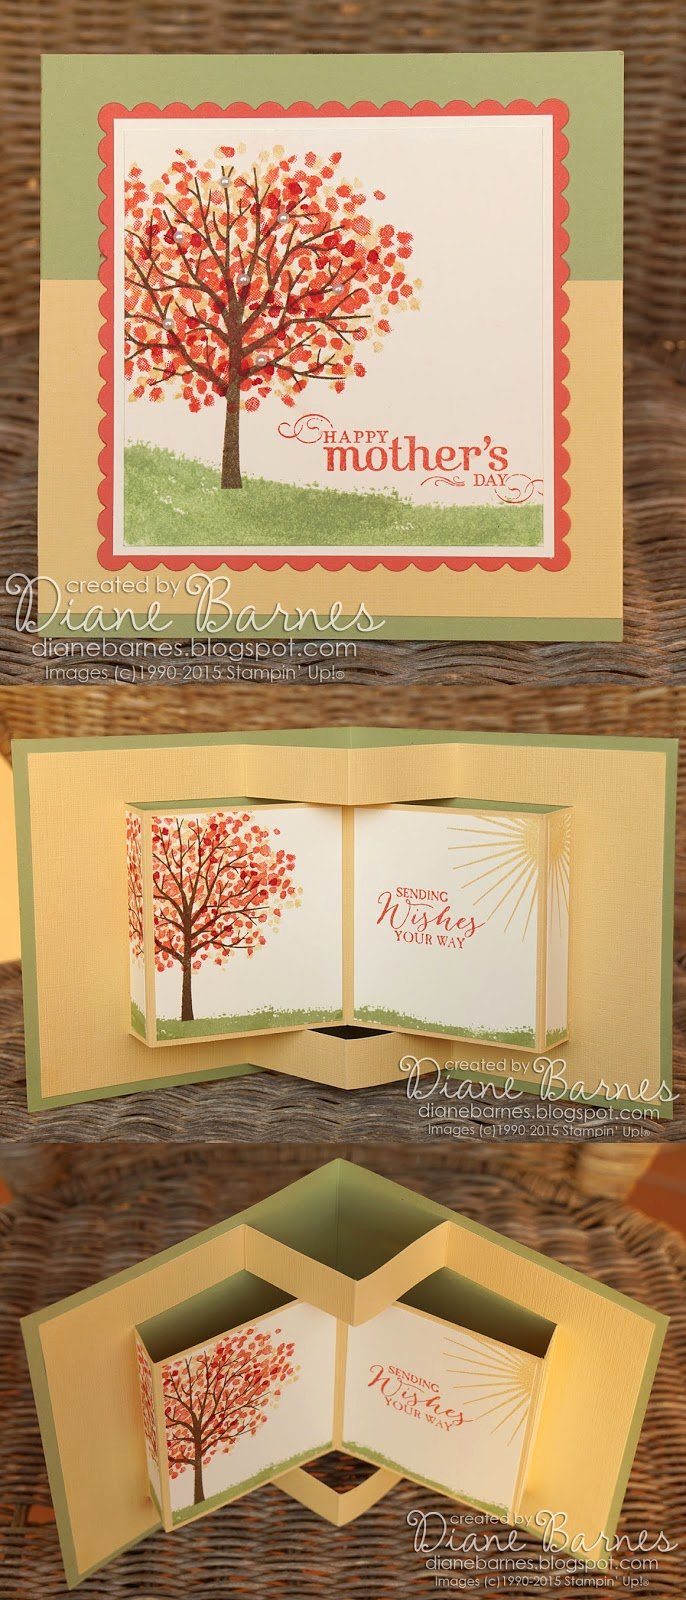 Pop Up Book Template Fresh Colour Me Happy Sheltering Tree Pop Up Book Card & Template